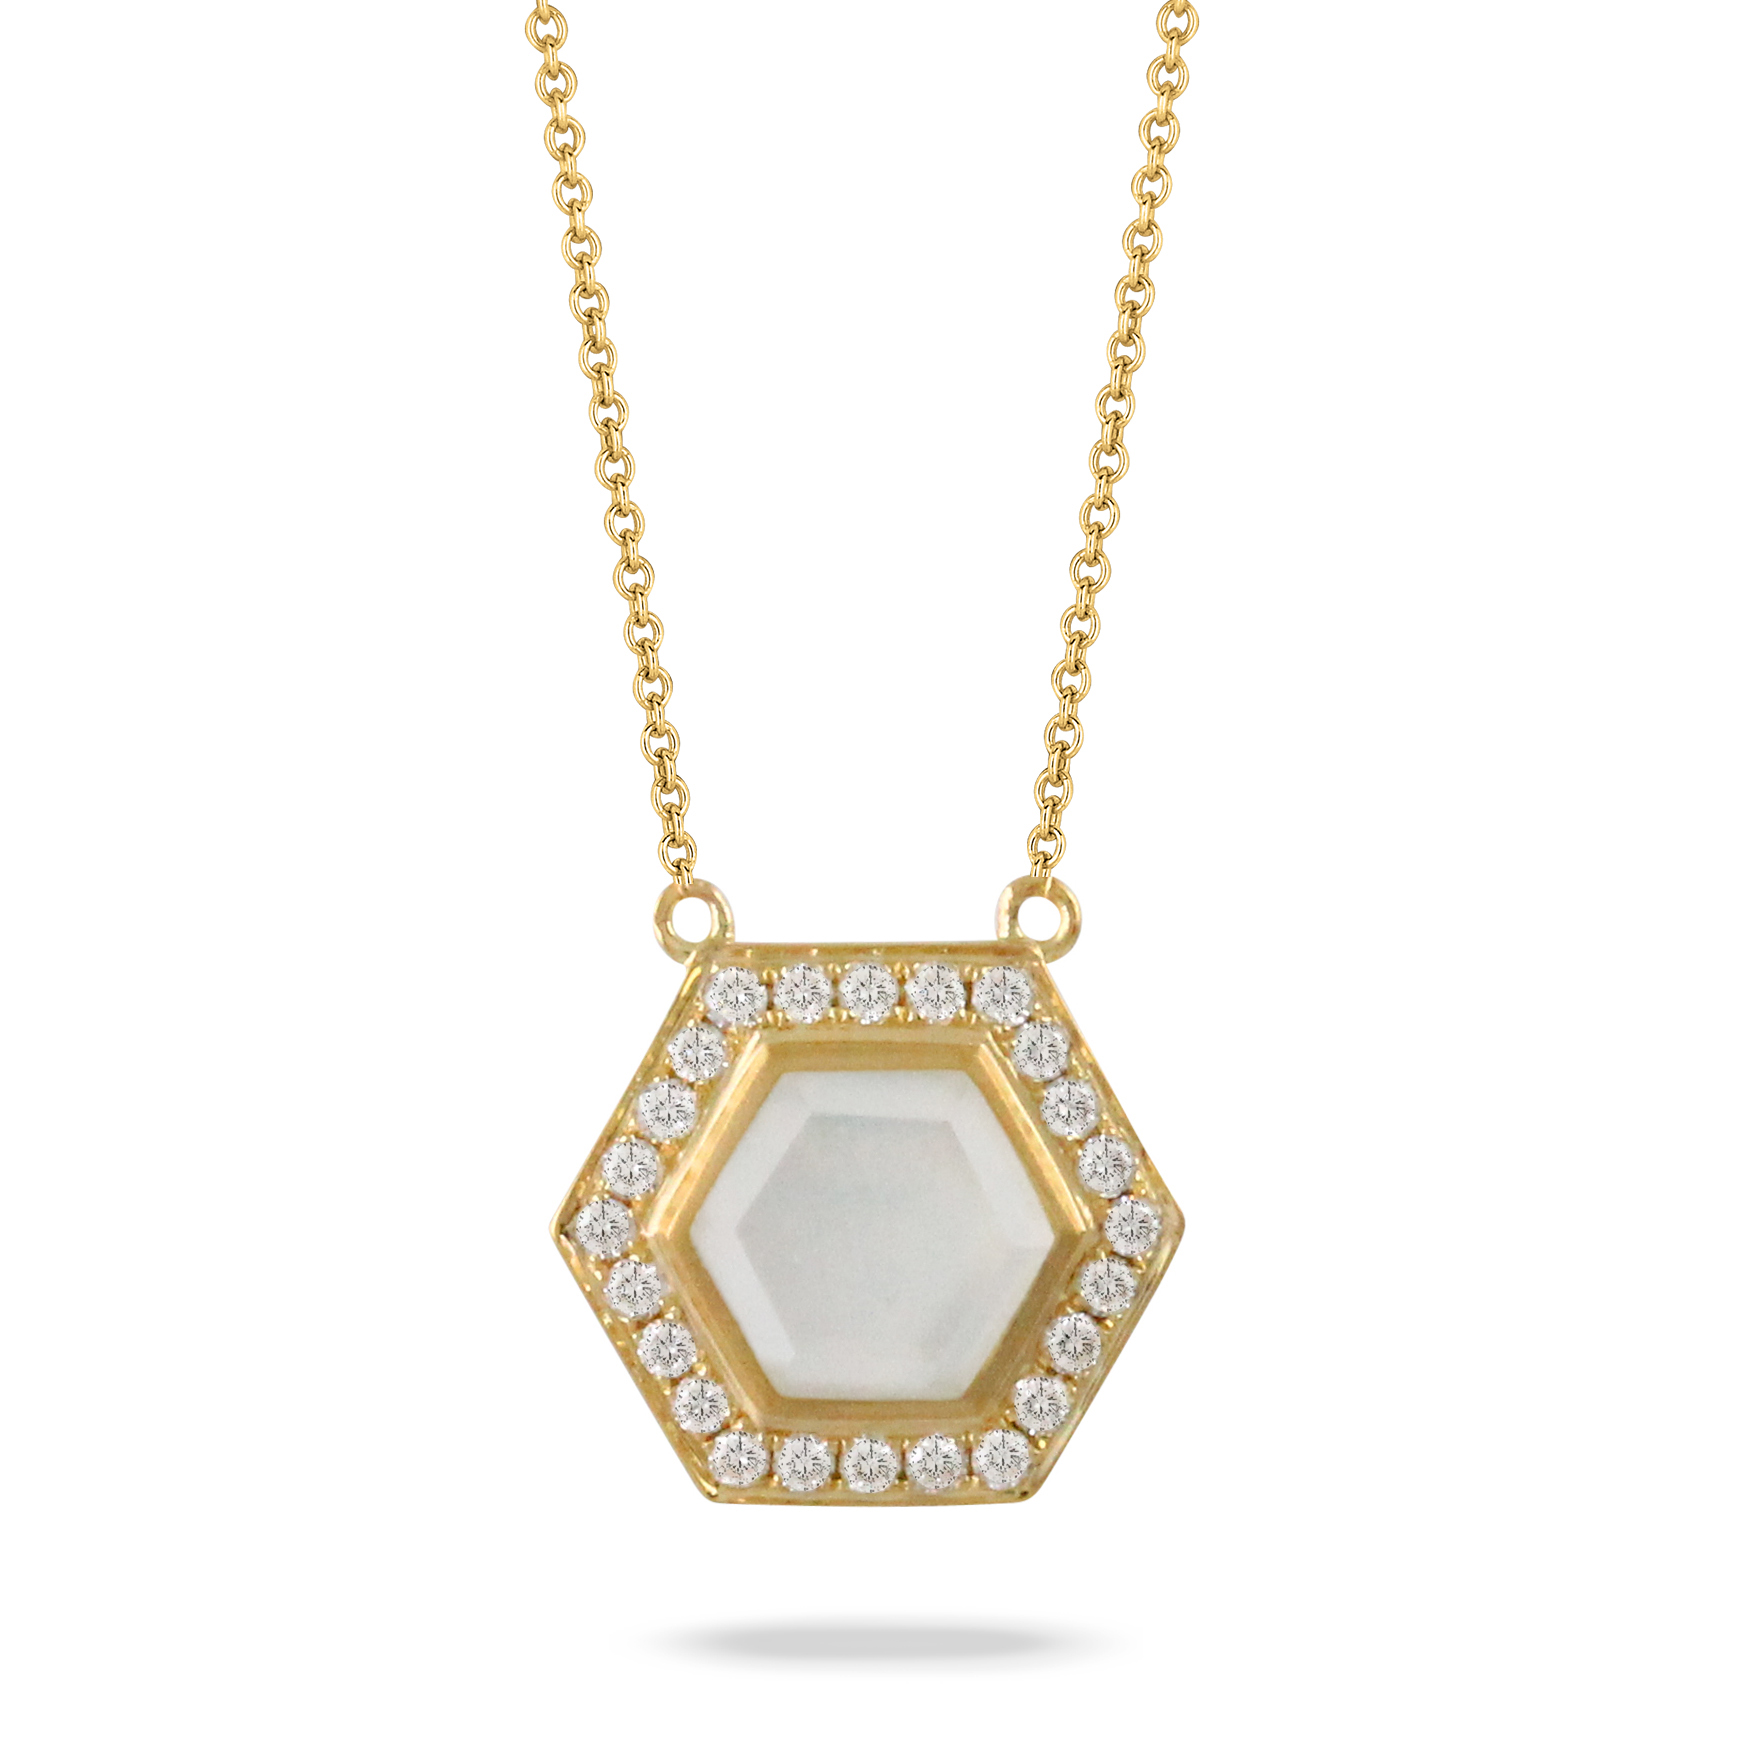 18K YELLOW GOLD NECKLACE by Dove